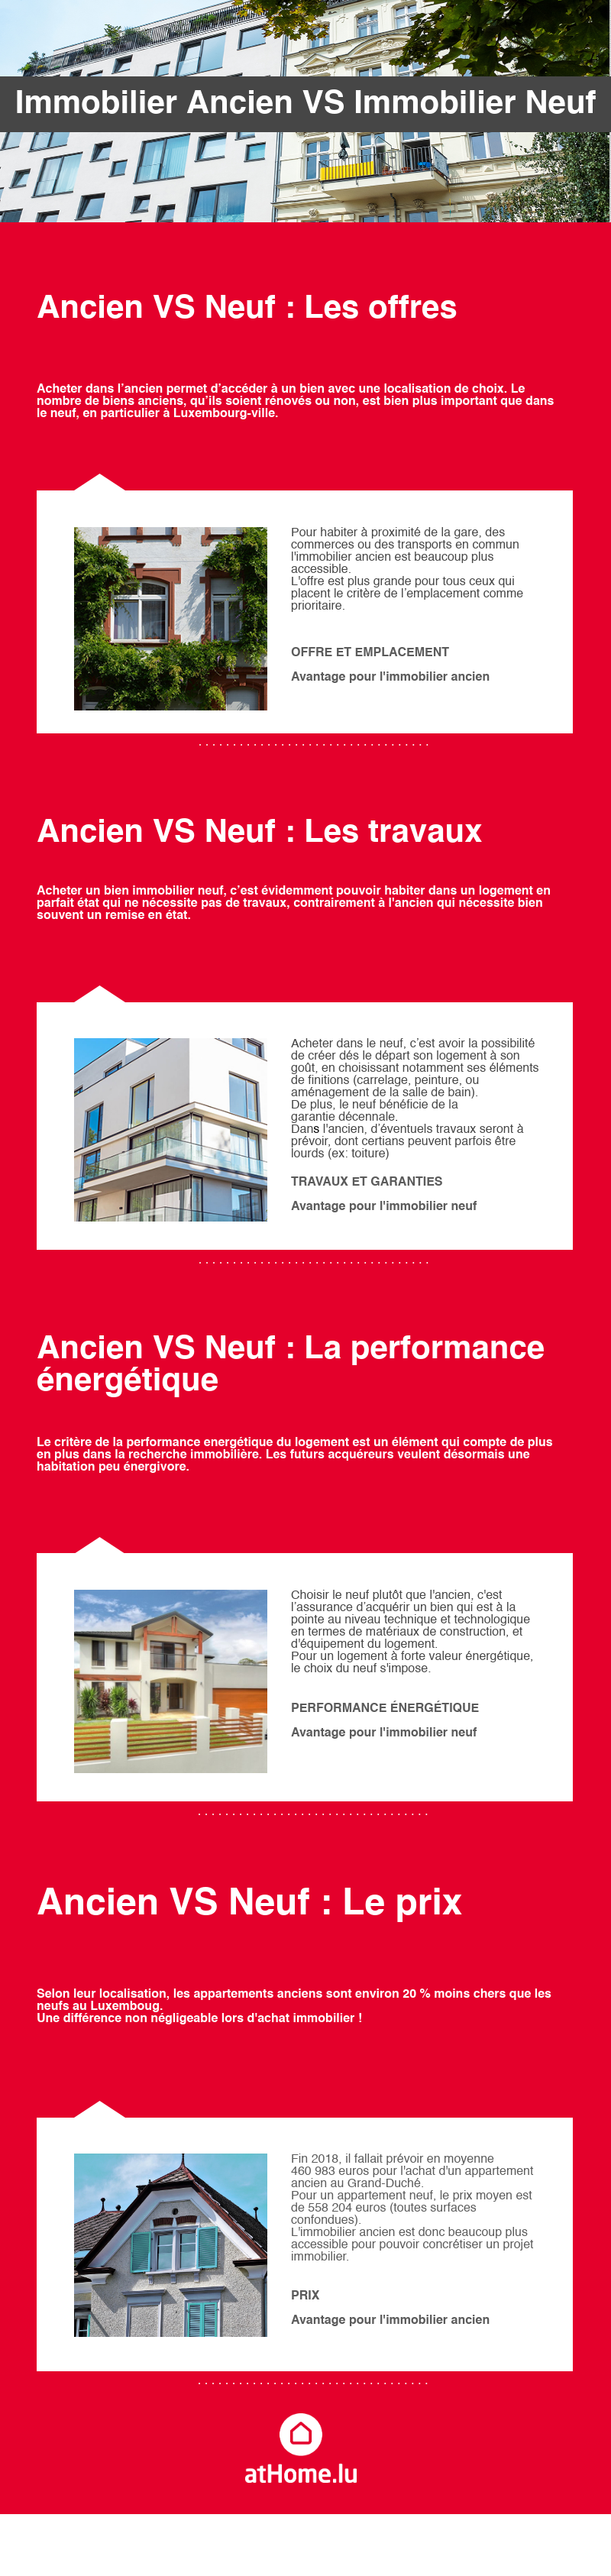 Immobilier ancien vs immobilier neuf